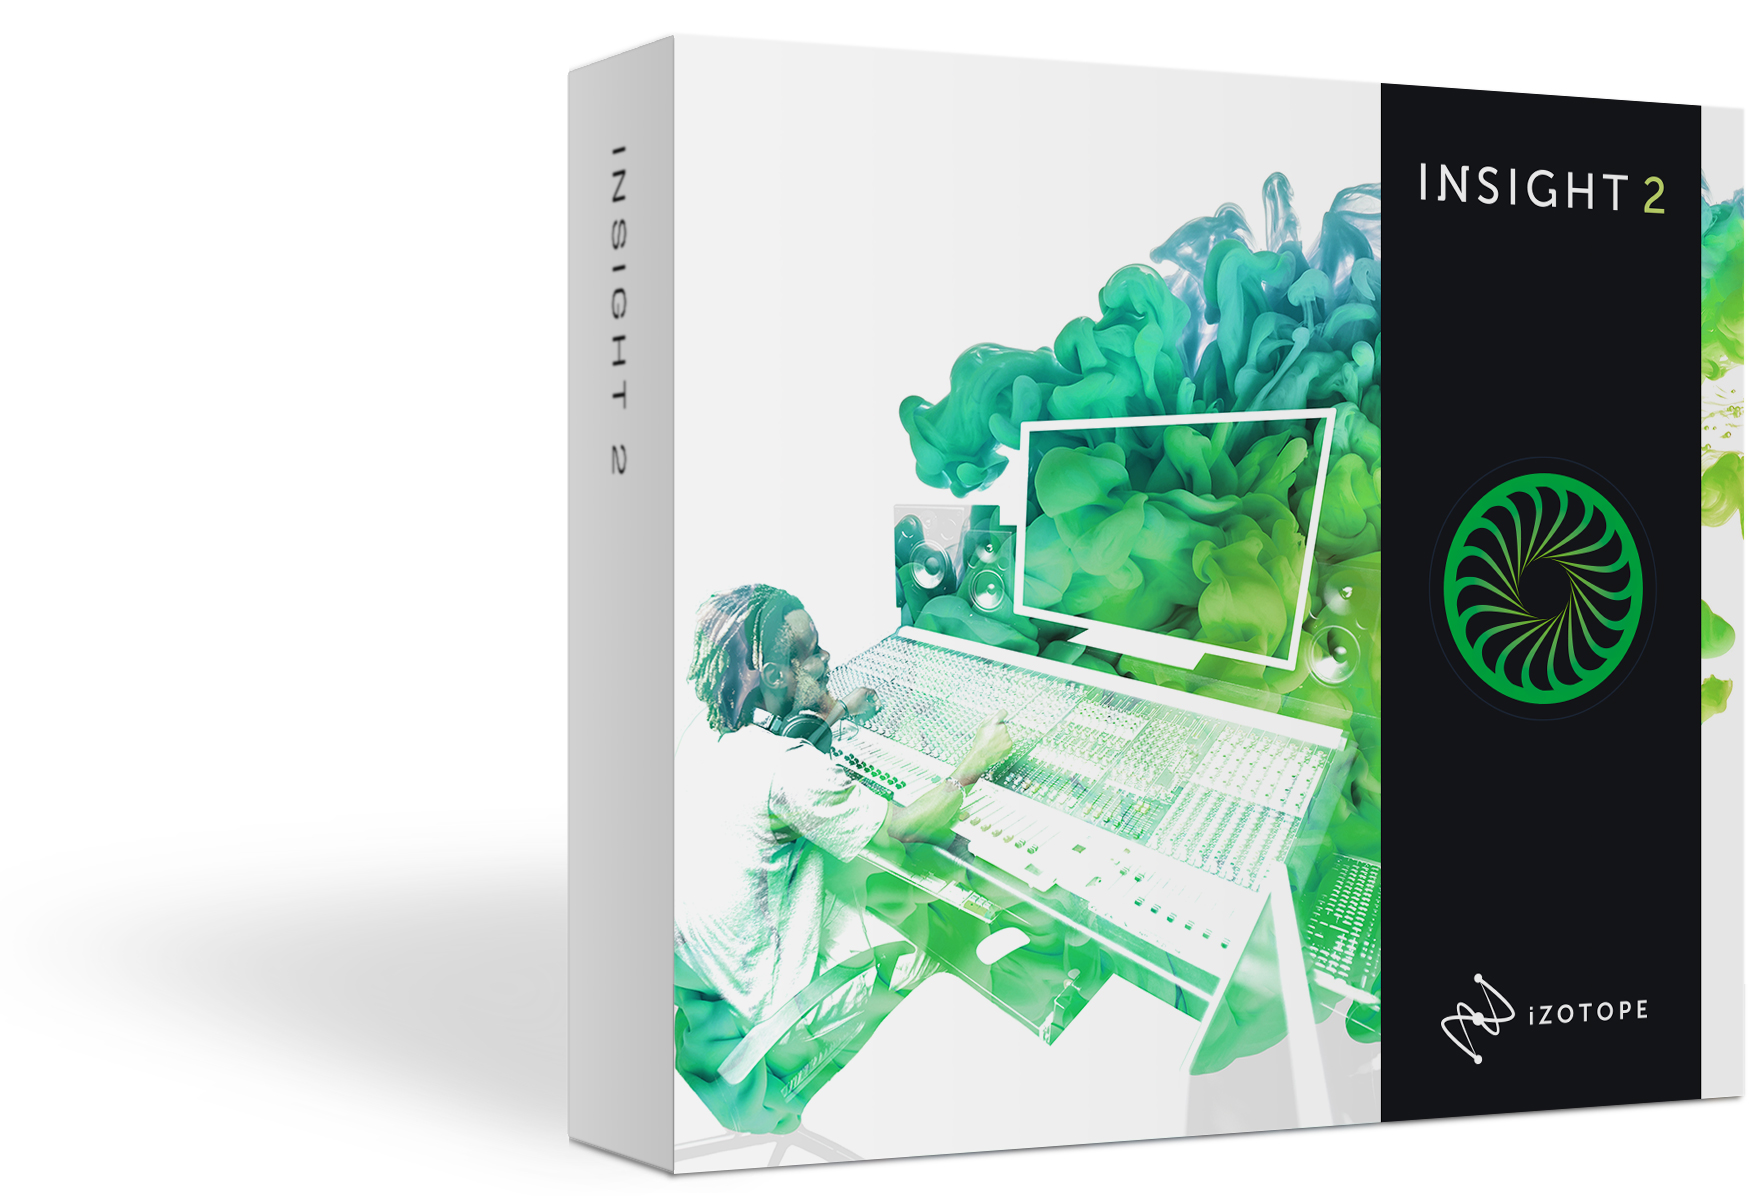 iZotope Music Production Suite 2 1 Crossgrade from Advanced